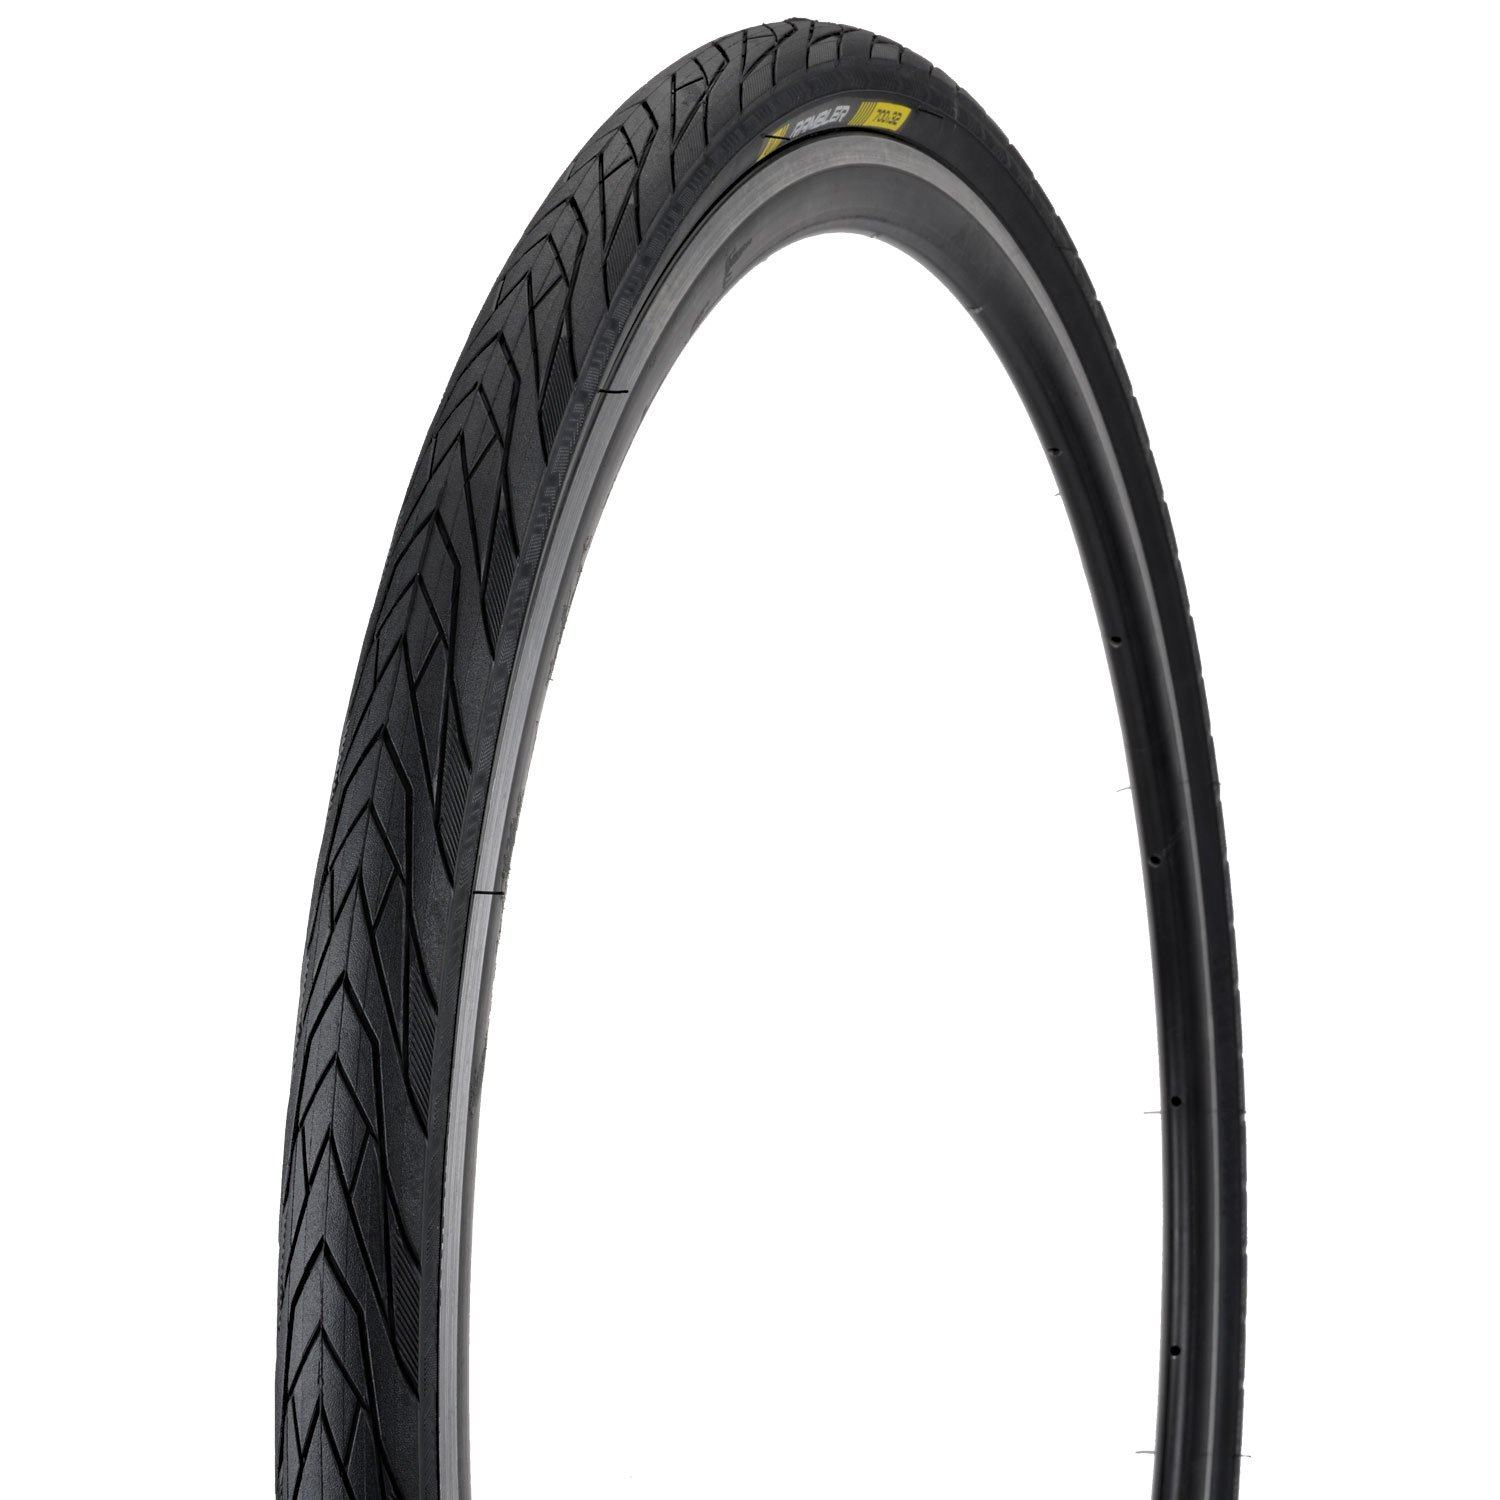 Nashbar Rambler City Tire - BLACK, 26X1.75